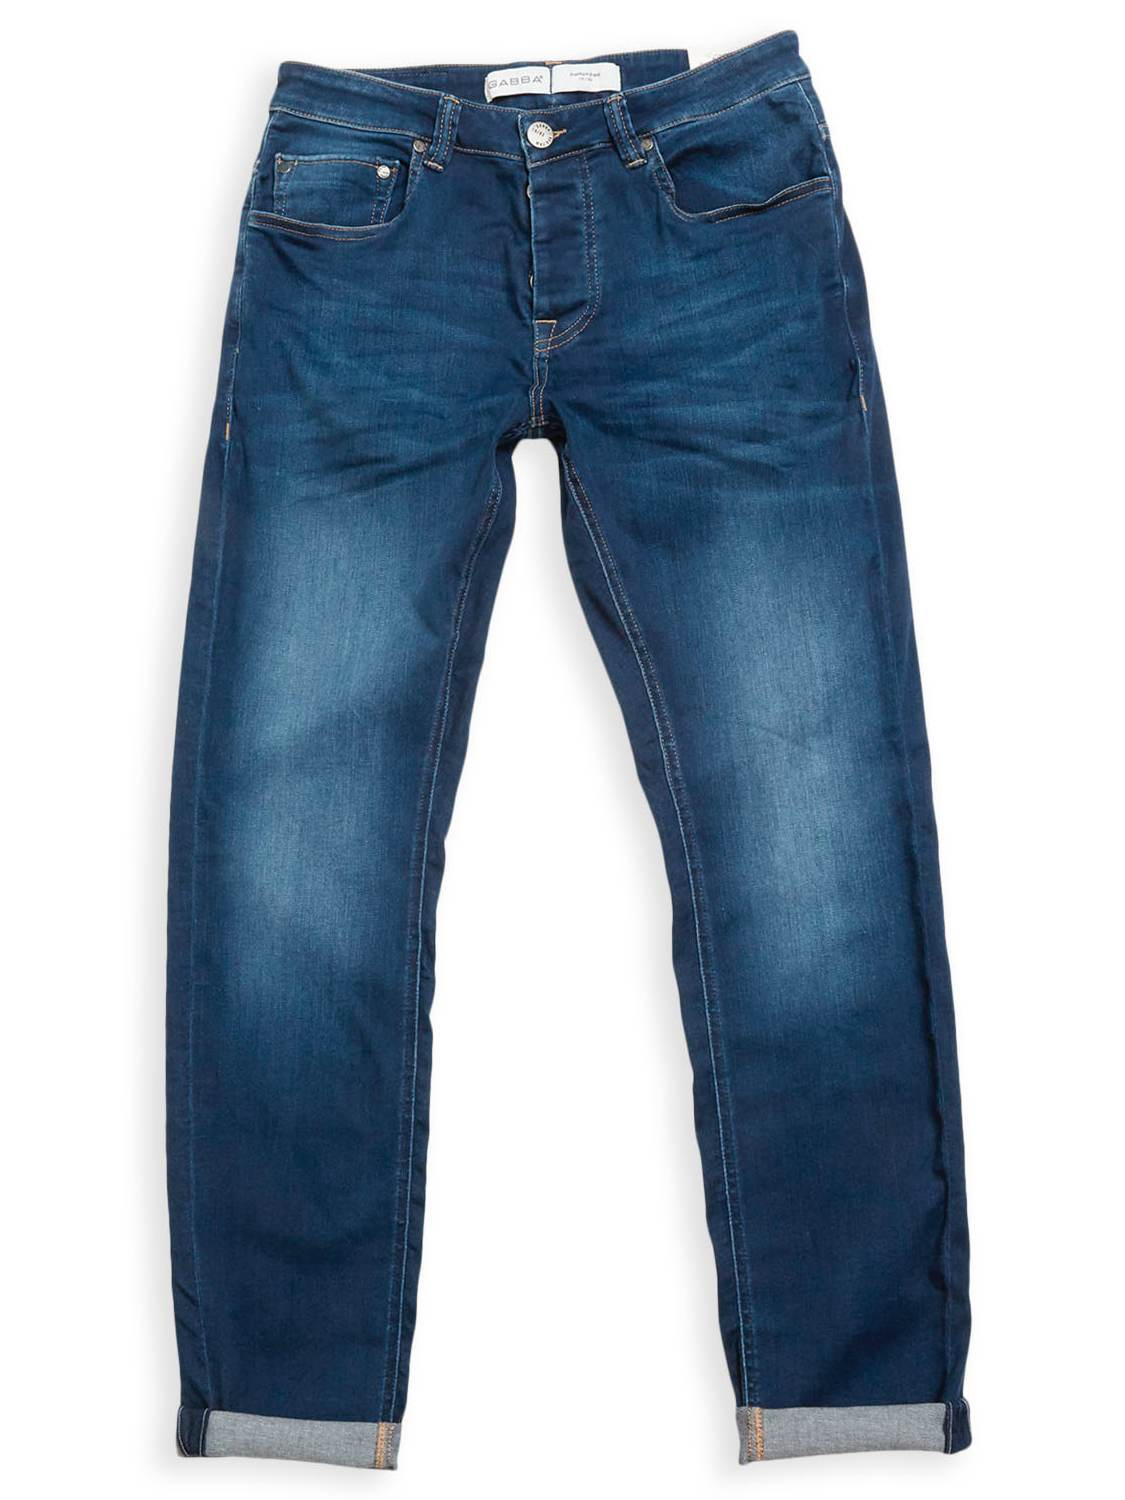 GABBA JEANS - Jones K2213 Blue | GATE36 HOBRO